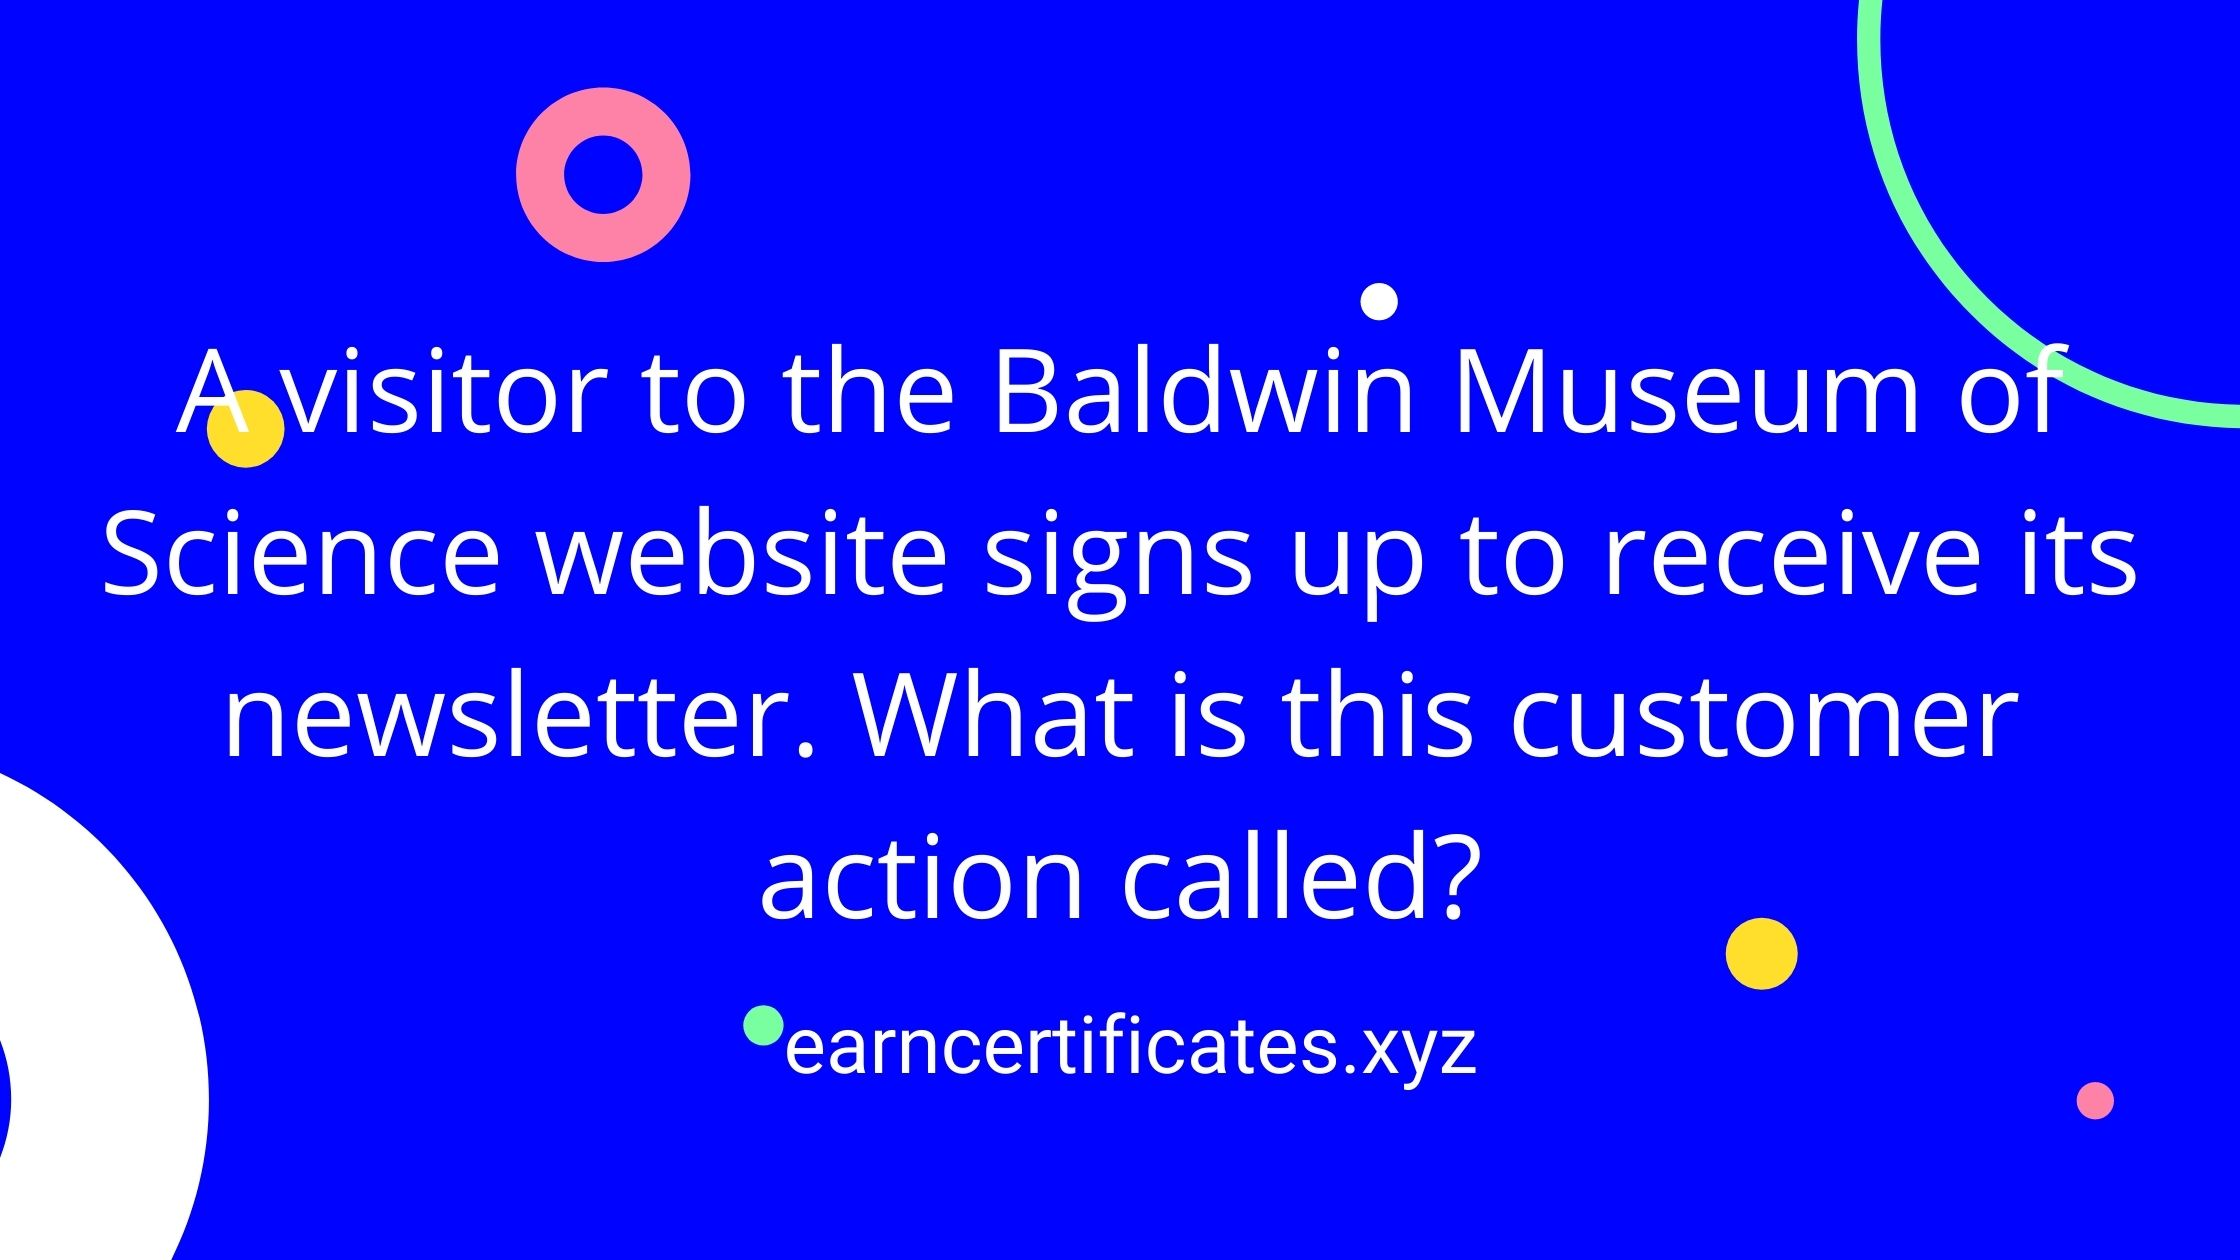 A visitor to the Baldwin Museum of Science website signs up to receive its newsletter. What is this customer action called?